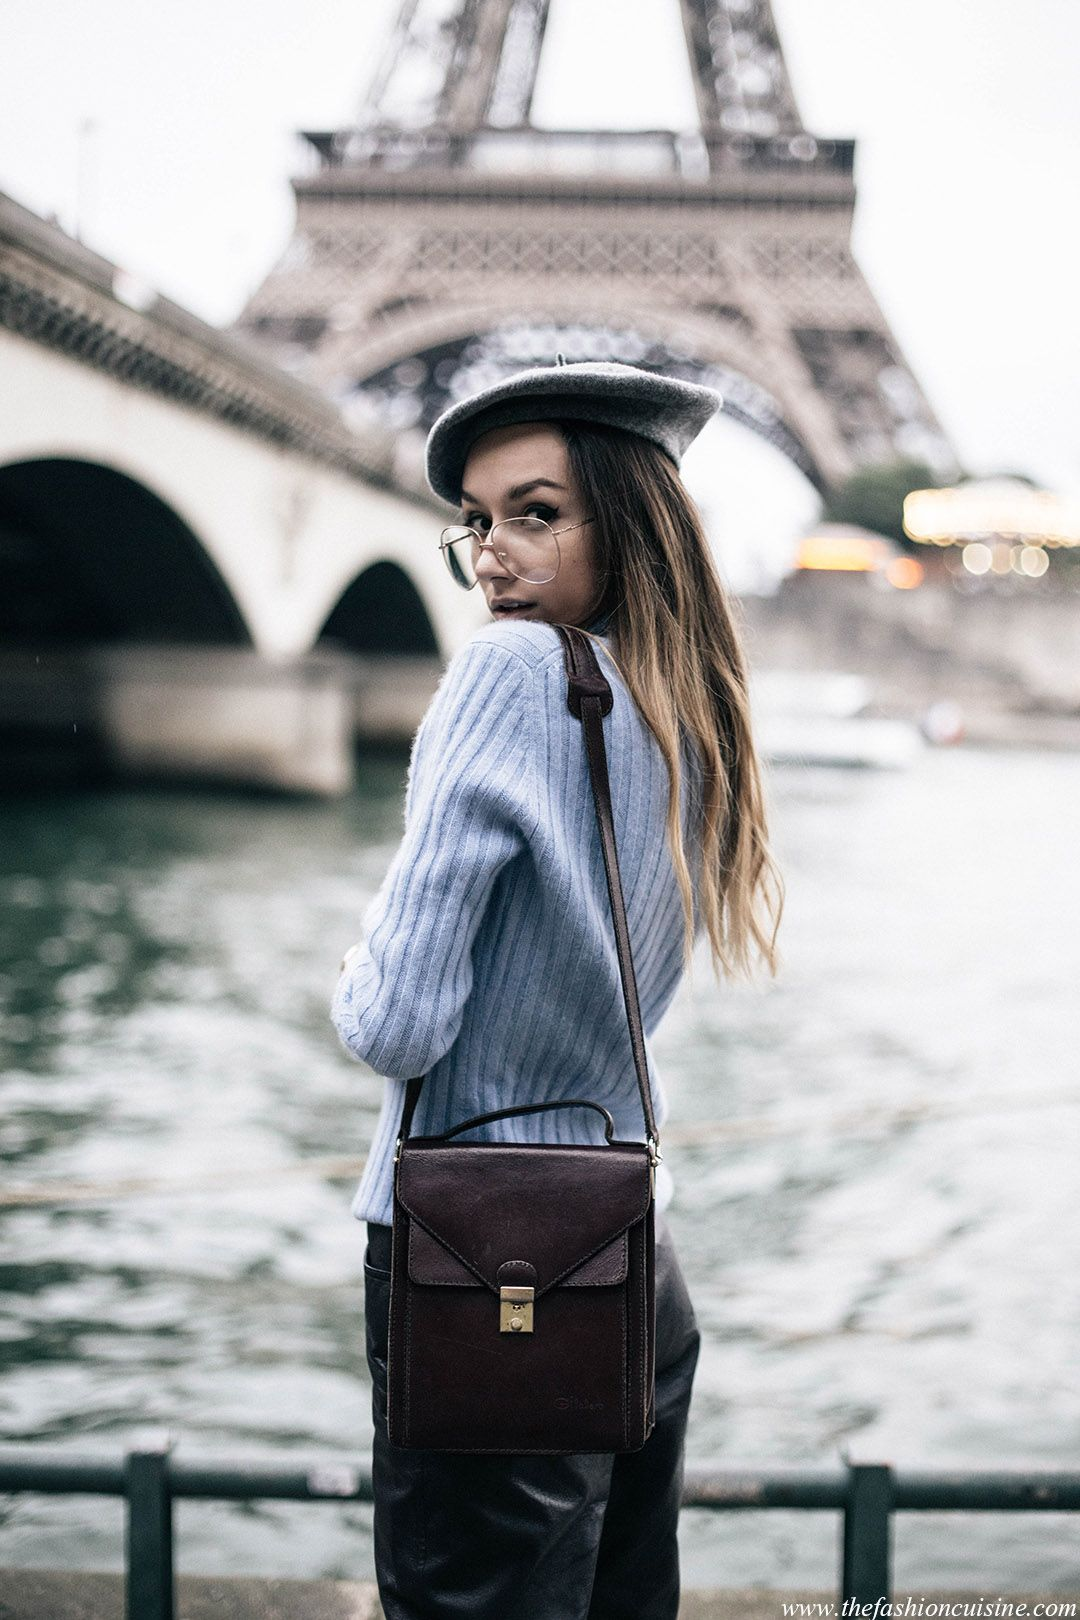 Fashion blogger Beatrice Gutu in Paris wearing cashmere baby blue  turtleneck with grey beret and geek aviator glasses near Eiffel Tower More 5c181b06923